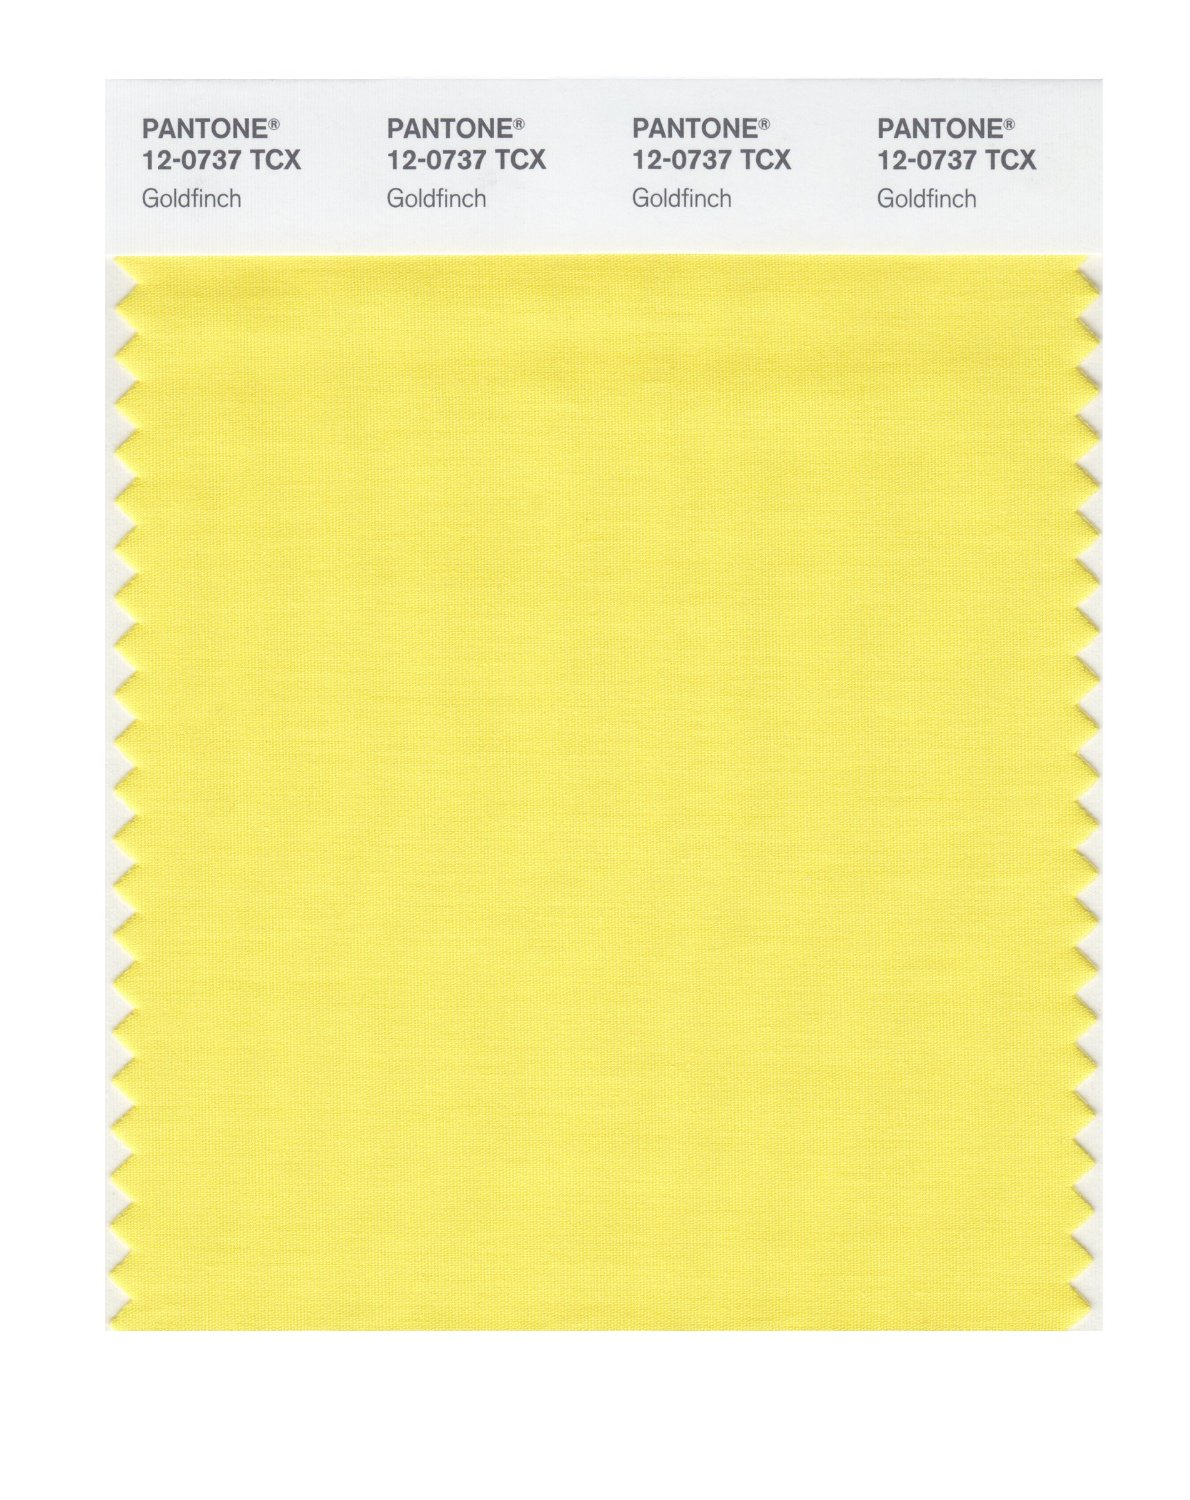 Pantone Smart Swatch 12-0737 Goldfinch